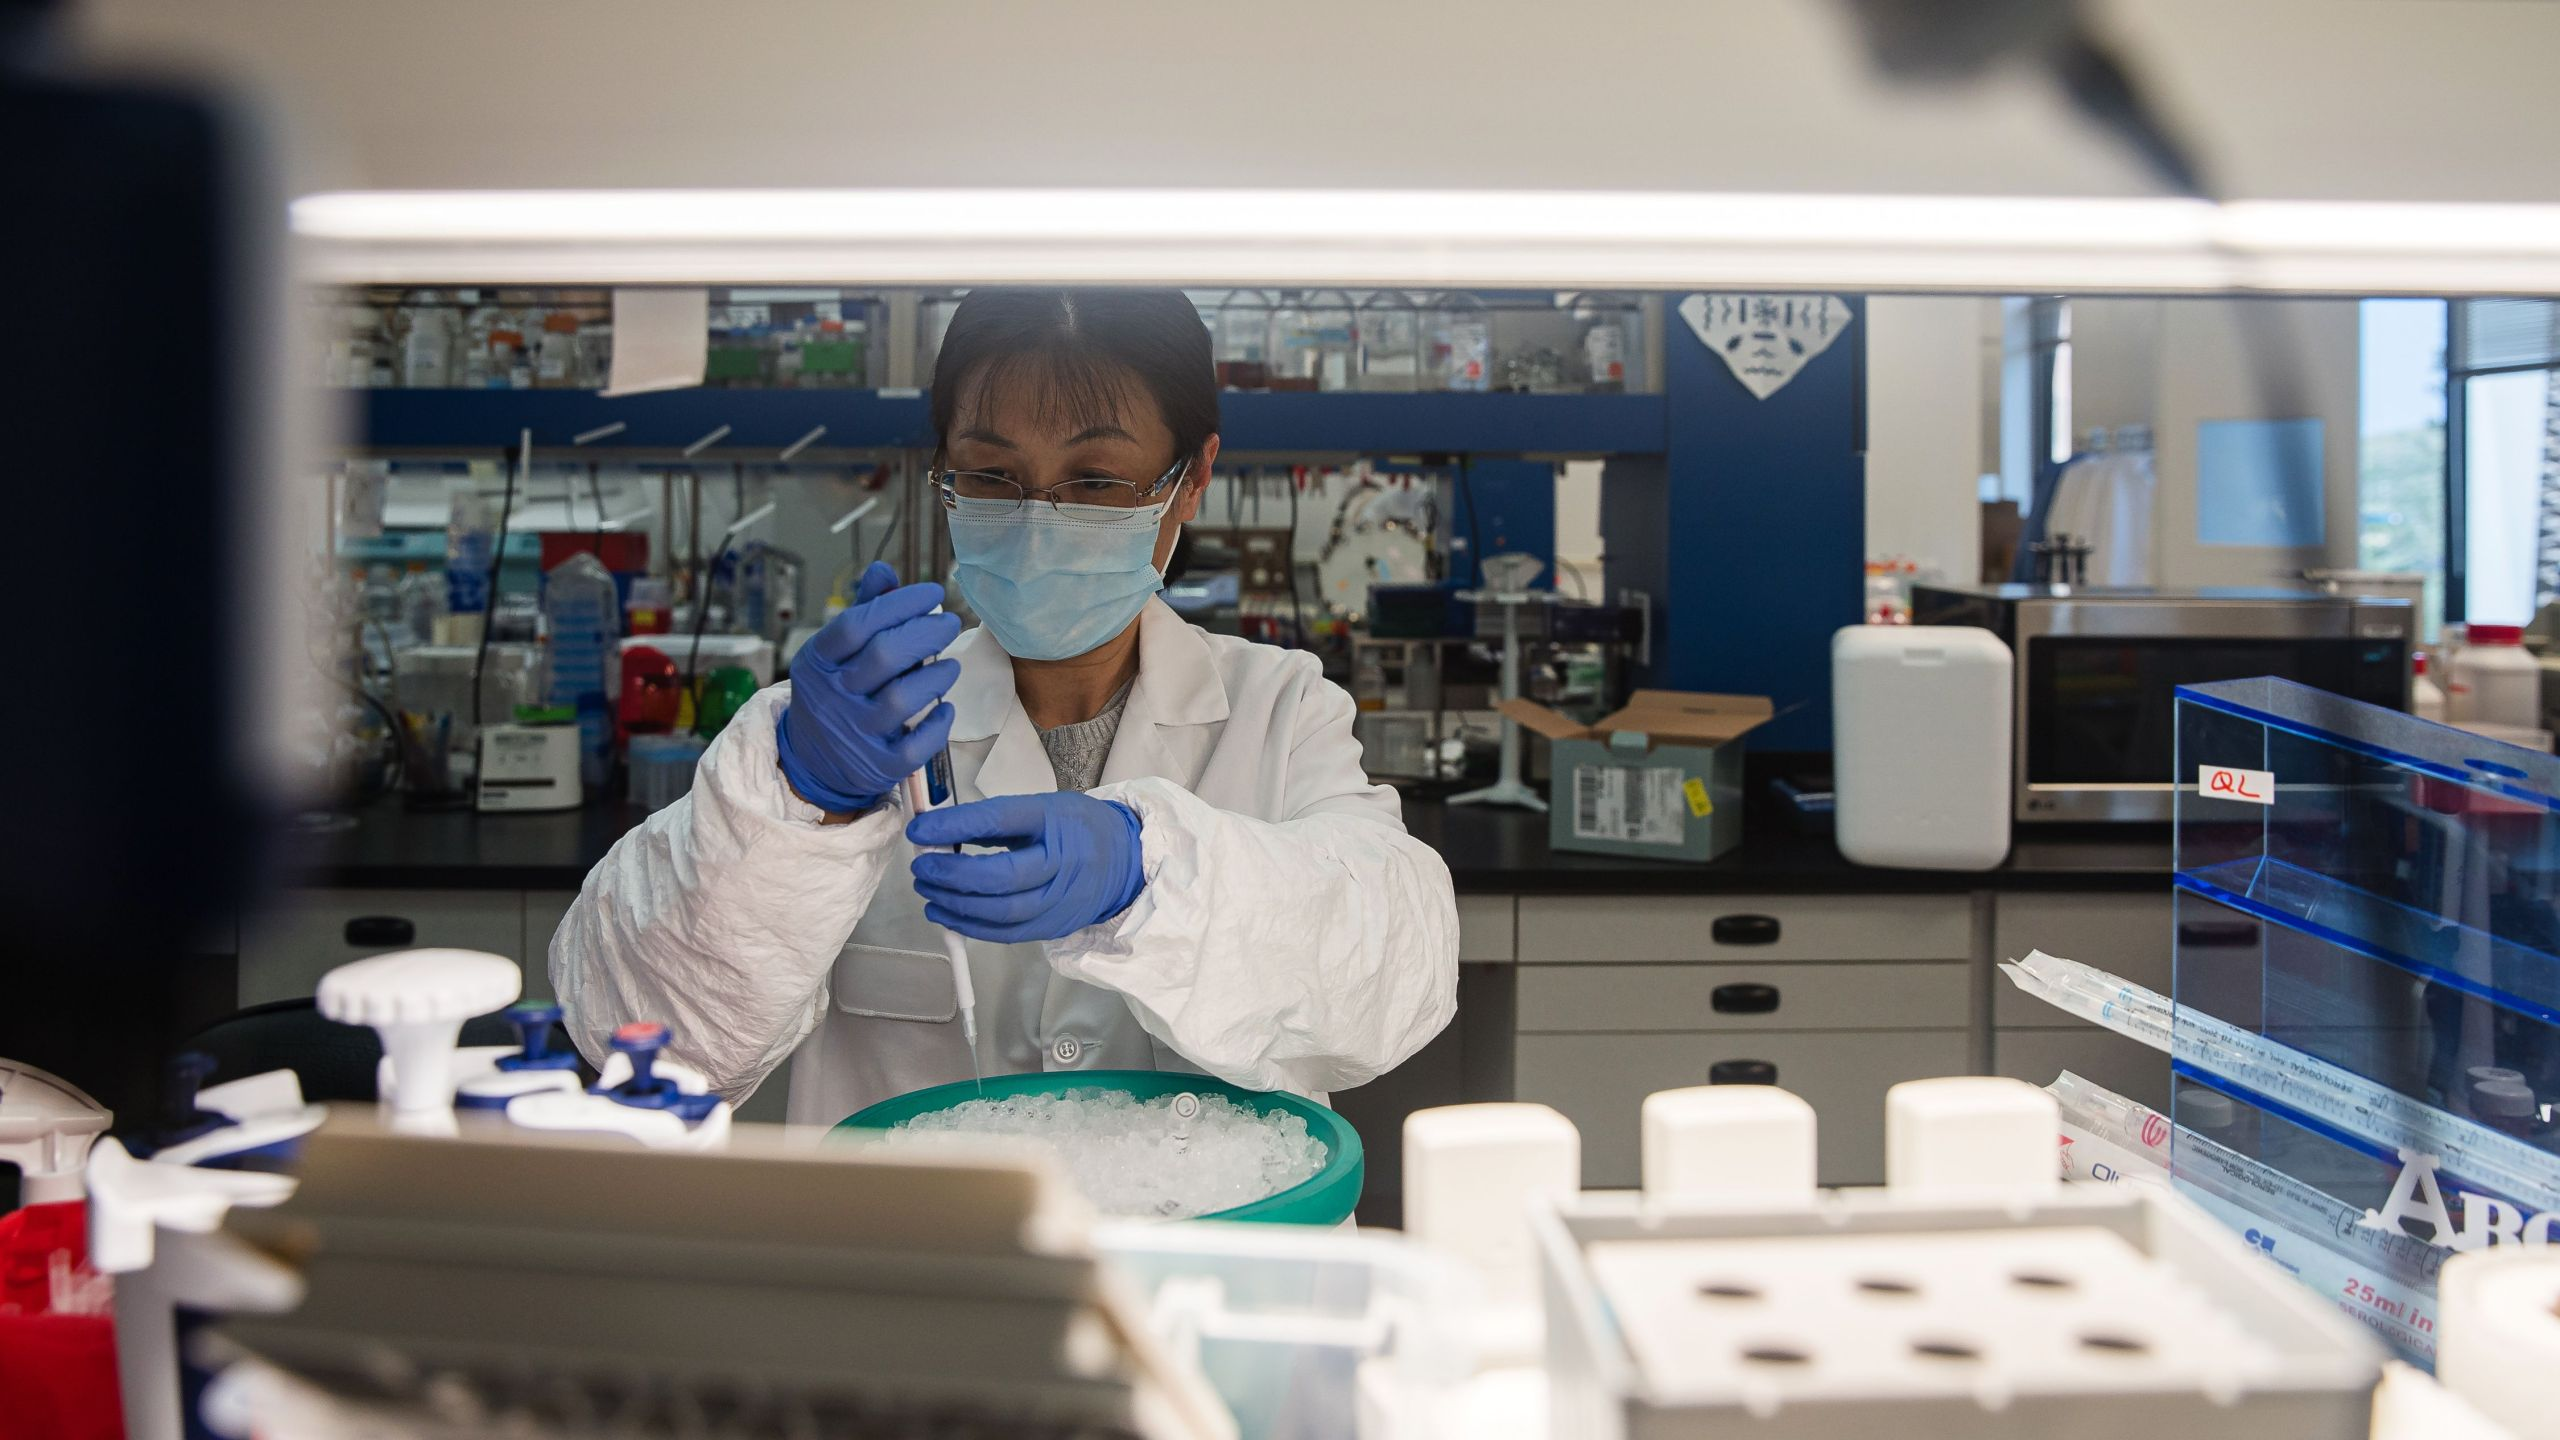 A scientist works in the lab that is focused on fighting COVID-19 at Sorrento Therapeutics in San Diego on May 22, 2020. (ARIANA DREHSLER/AFP via Getty Images)